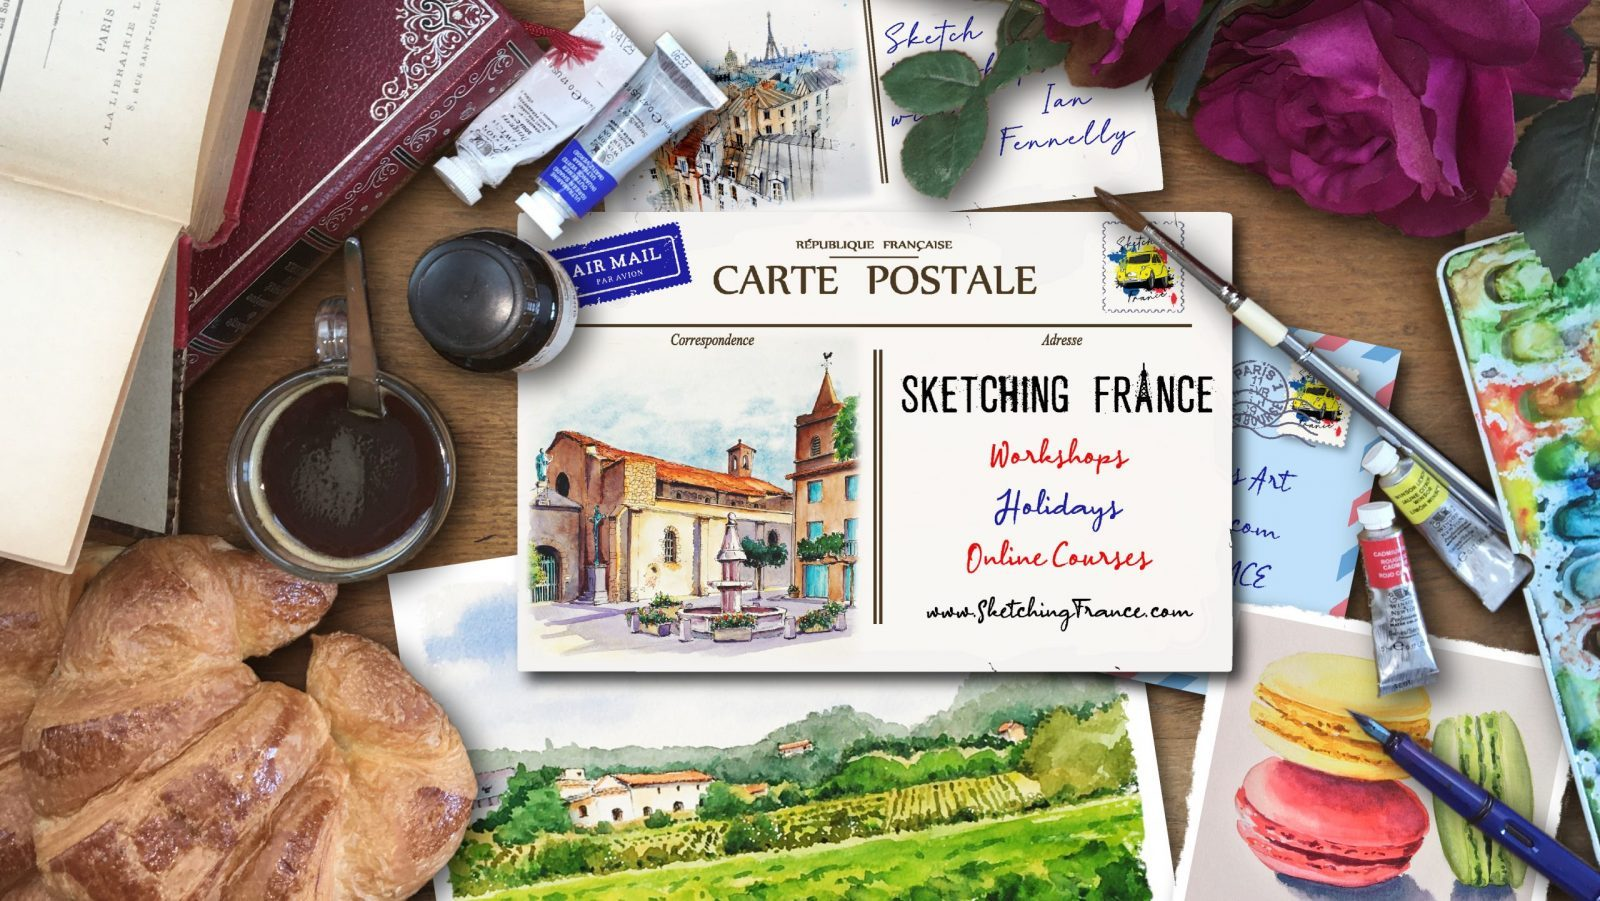 Sketching France! | Workshops, holidays and online courses to develop your sketching and watercolour skills whilst learning more about French life and culture.